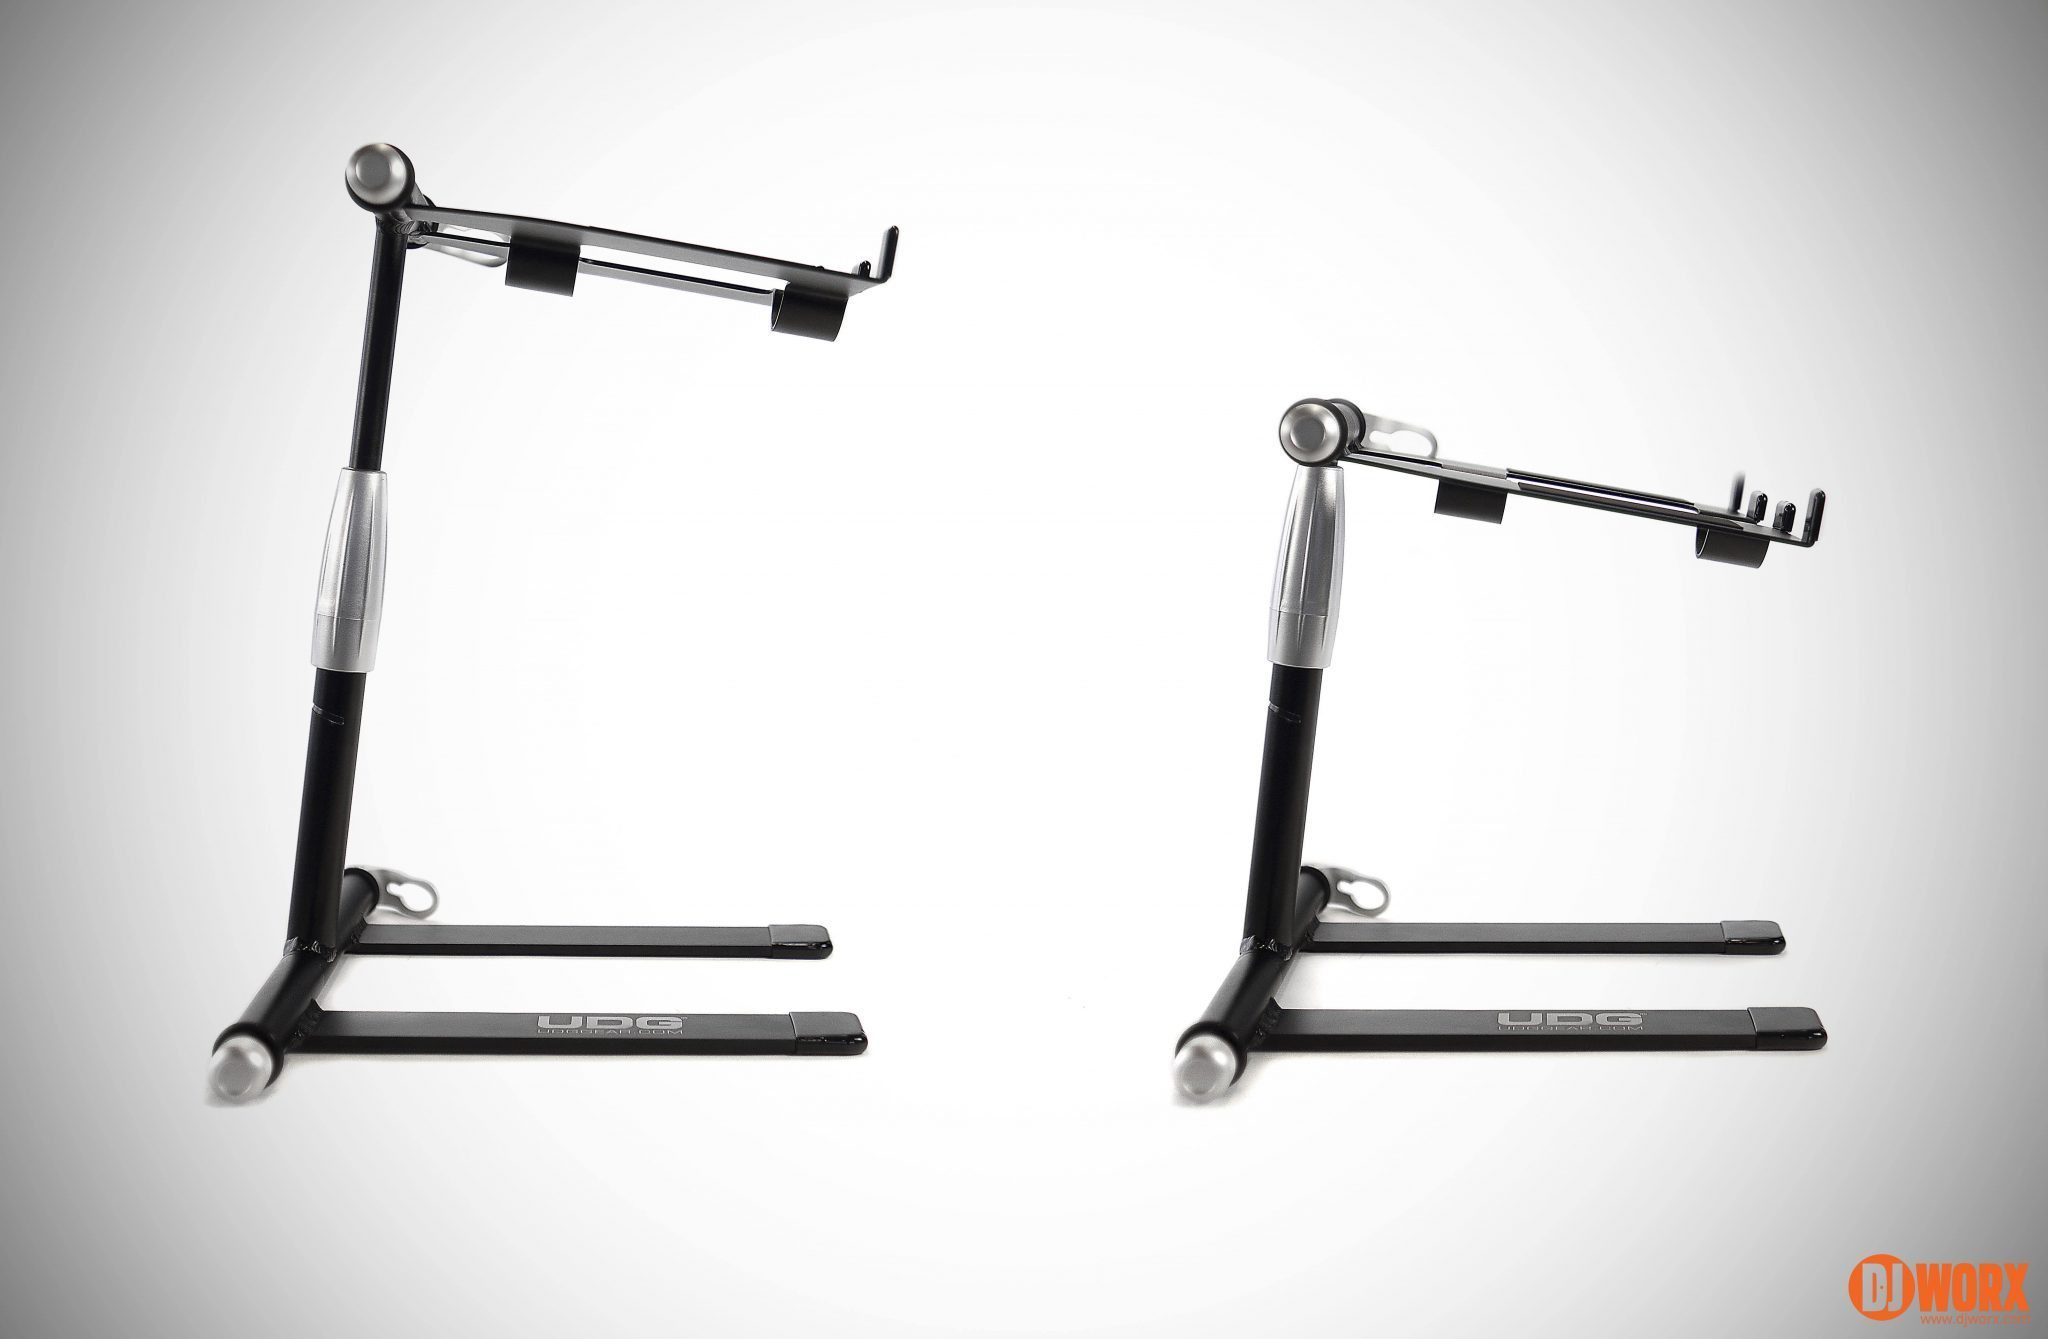 Udg creator dj laptop stand review 12 djworx for Stand createur